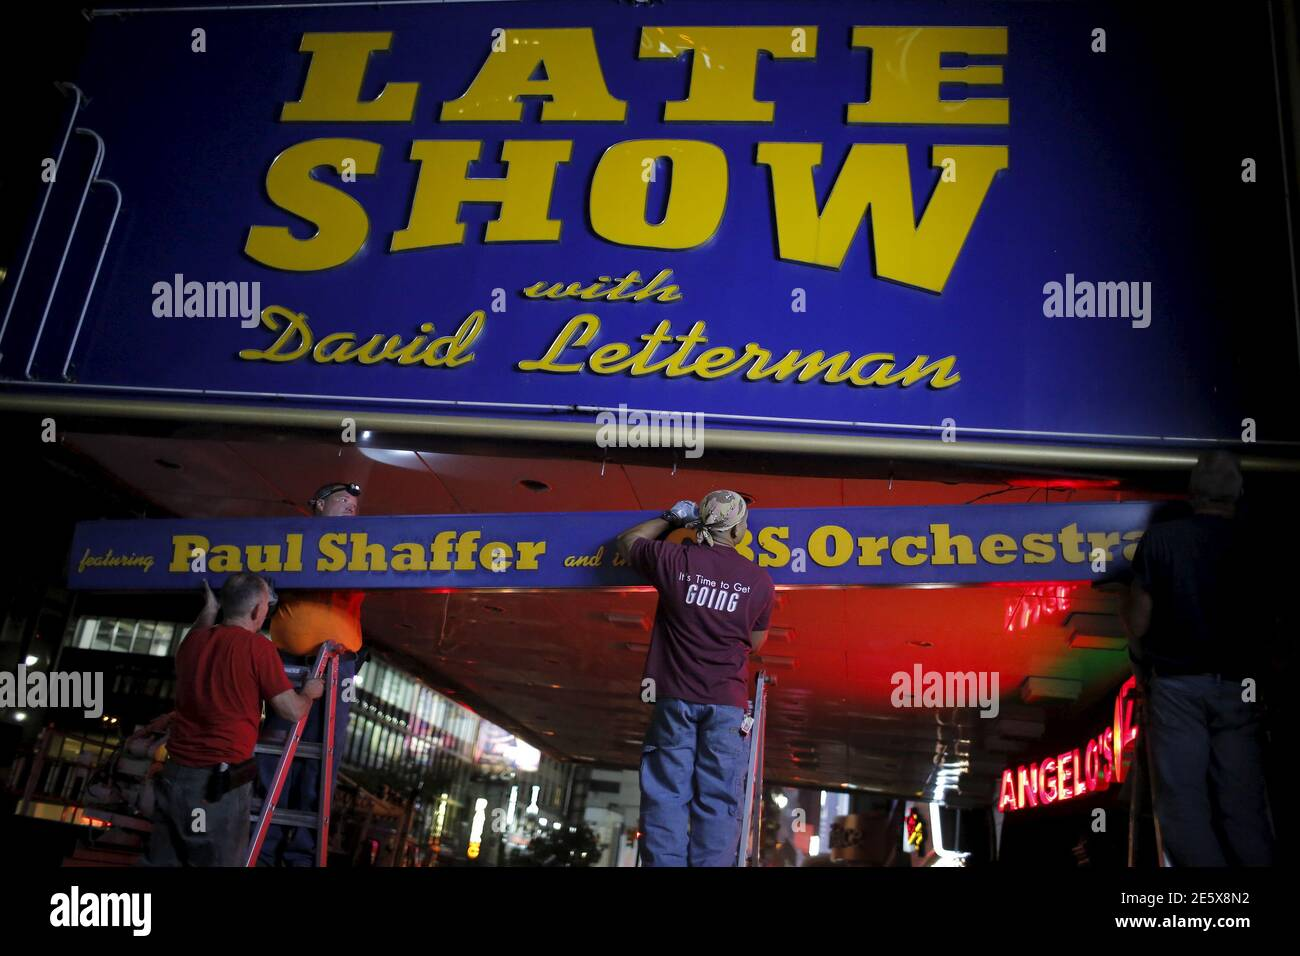 """Workers remove part of the marquee for the """"Late Show with David Letterman"""" outside of the Ed Sullivan Theater in Manhattan, New York May 27, 2015. REUTERS/Eduardo Munoz Stock Photo"""